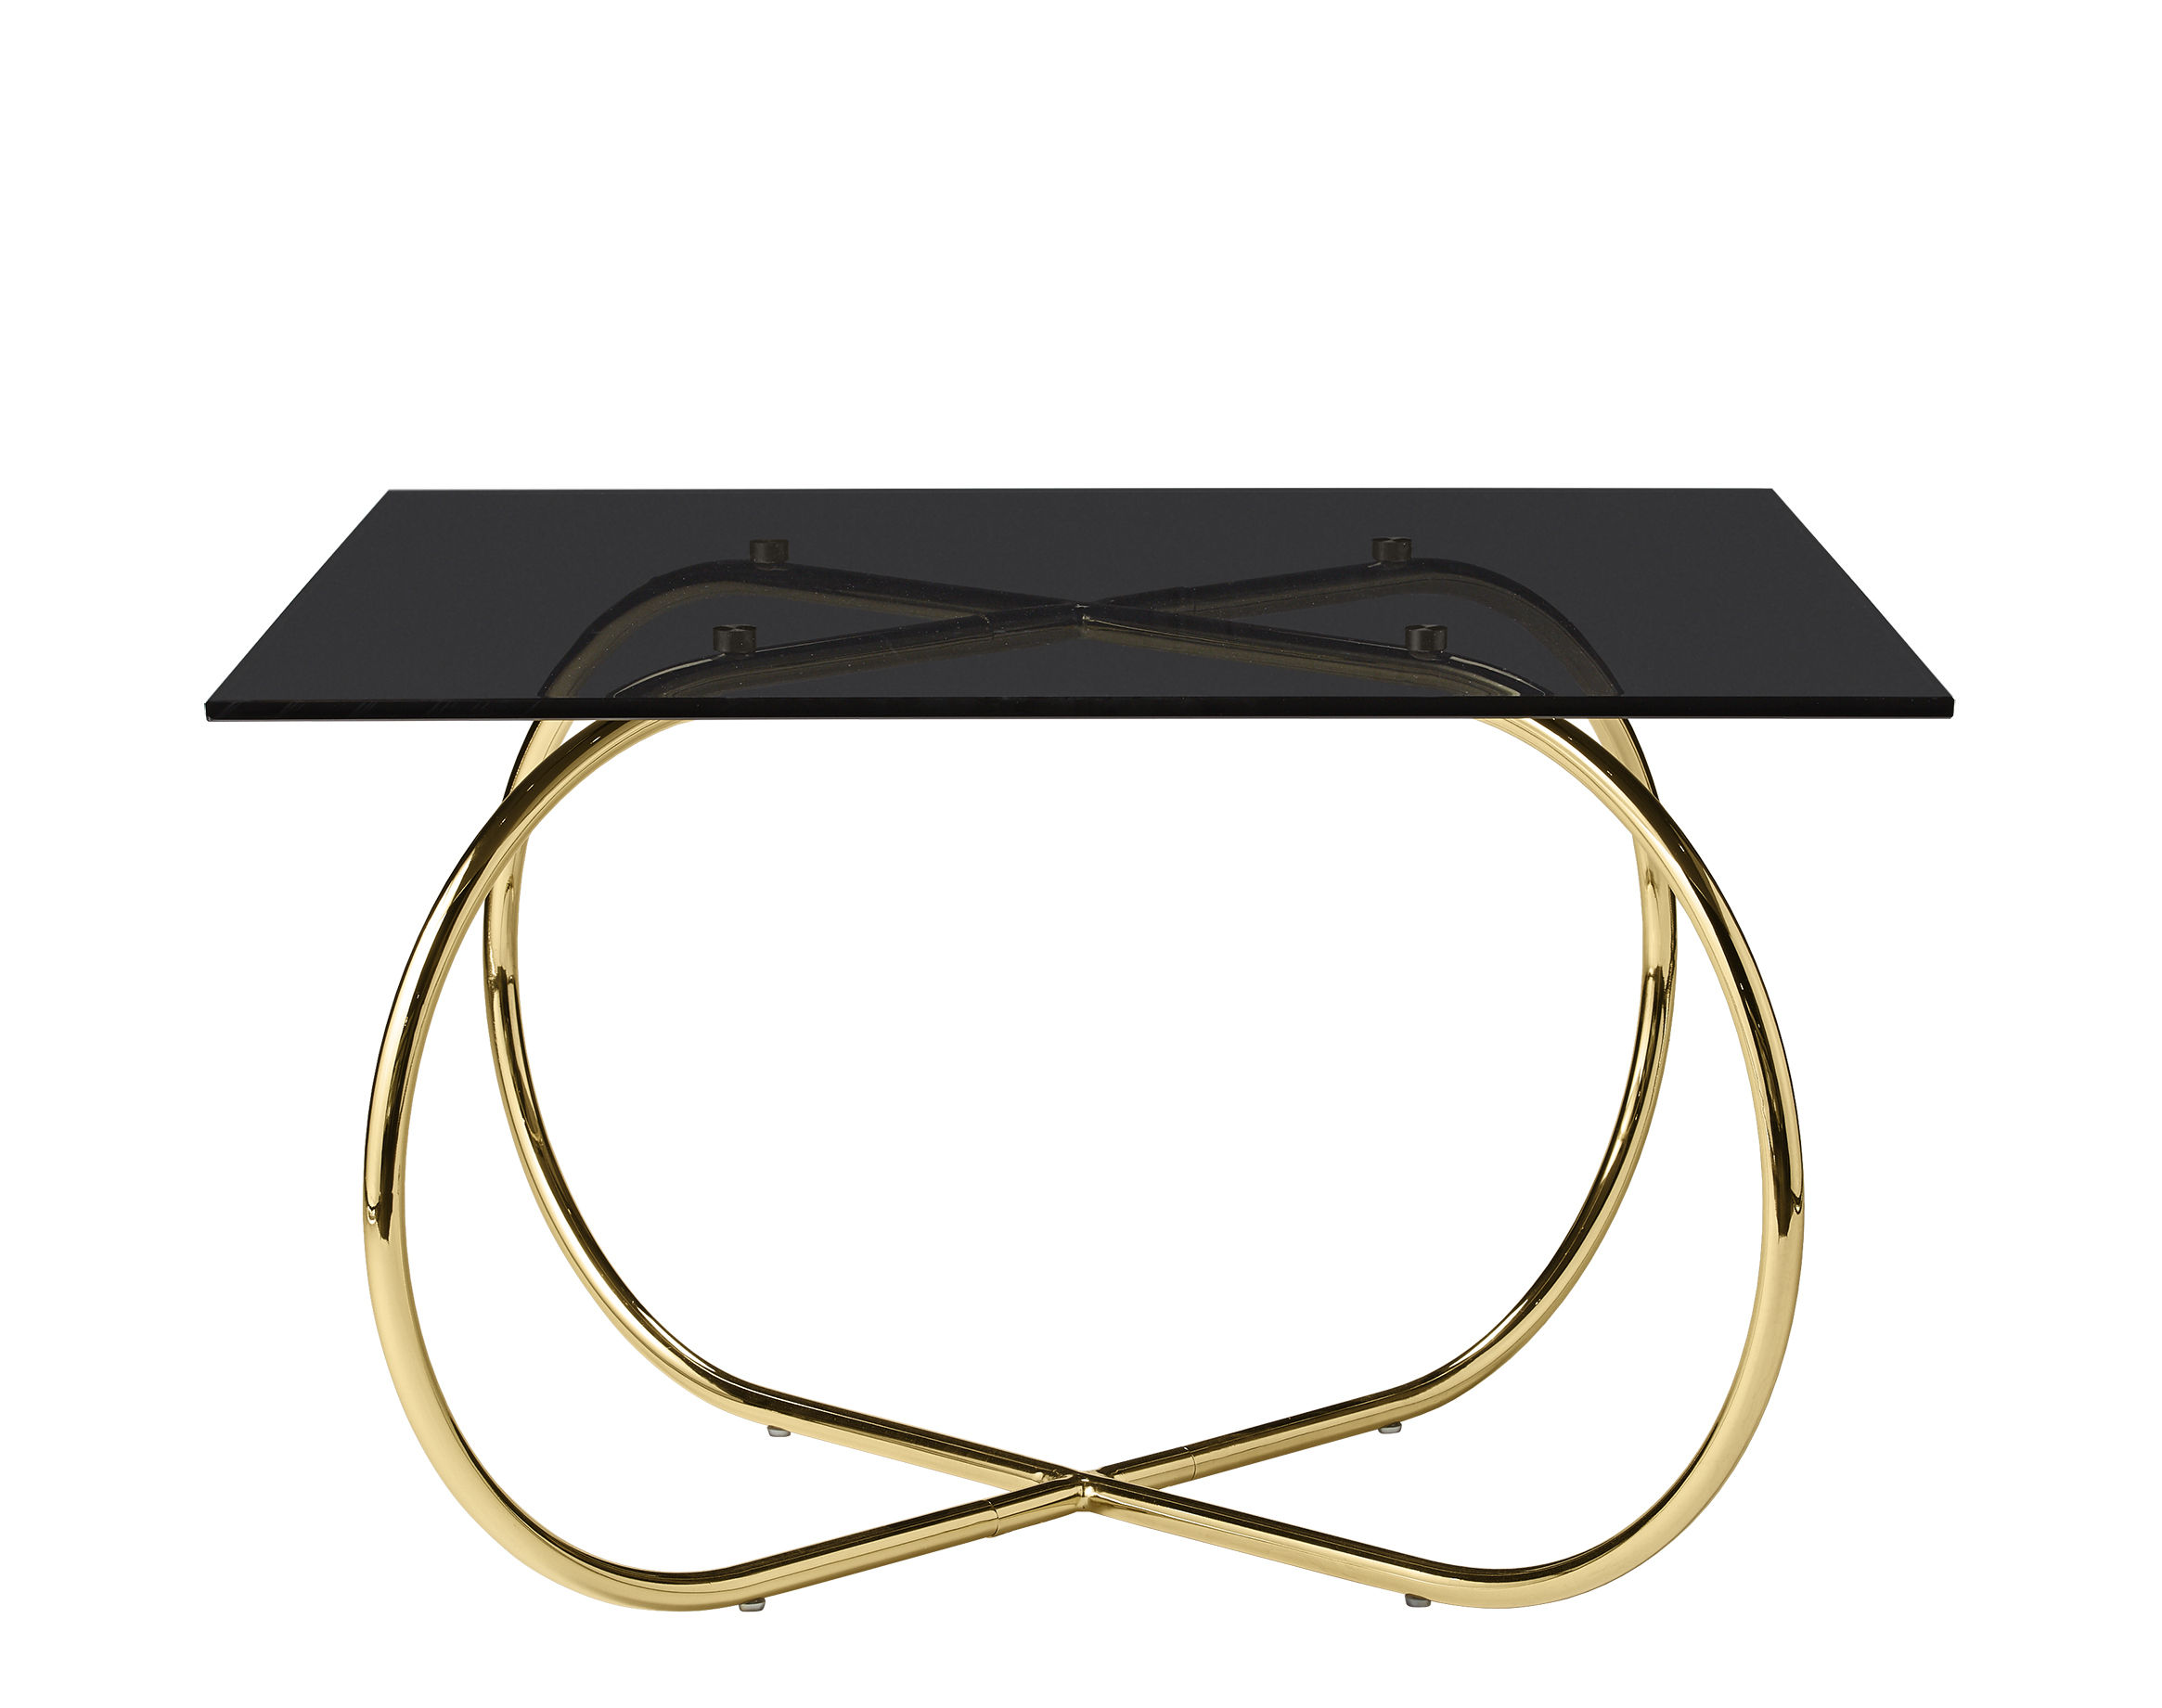 Furniture - Coffee Tables - Angui Coffee table - / Glass - 75 x 75 cm by AYTM - Gold base / Black top - Glass, Lacquered iron